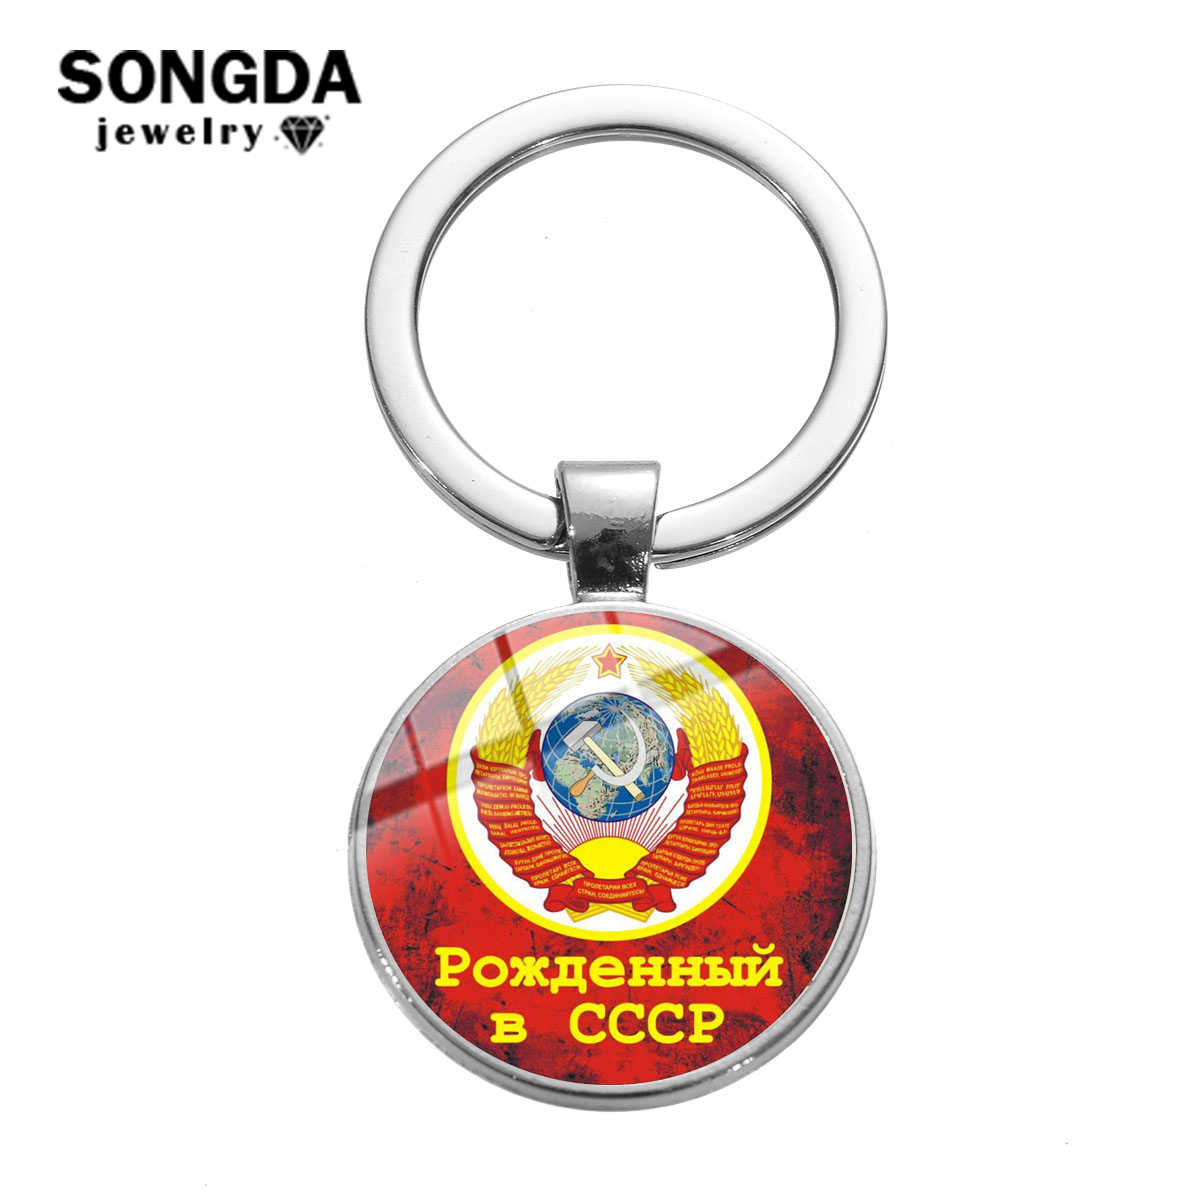 SONGDA Vintage USSR Soviet Badges Sickle Hammer Keychain CCCP Russia Emblem Communism Sign Top Grade Silver Color Key Chain Gift